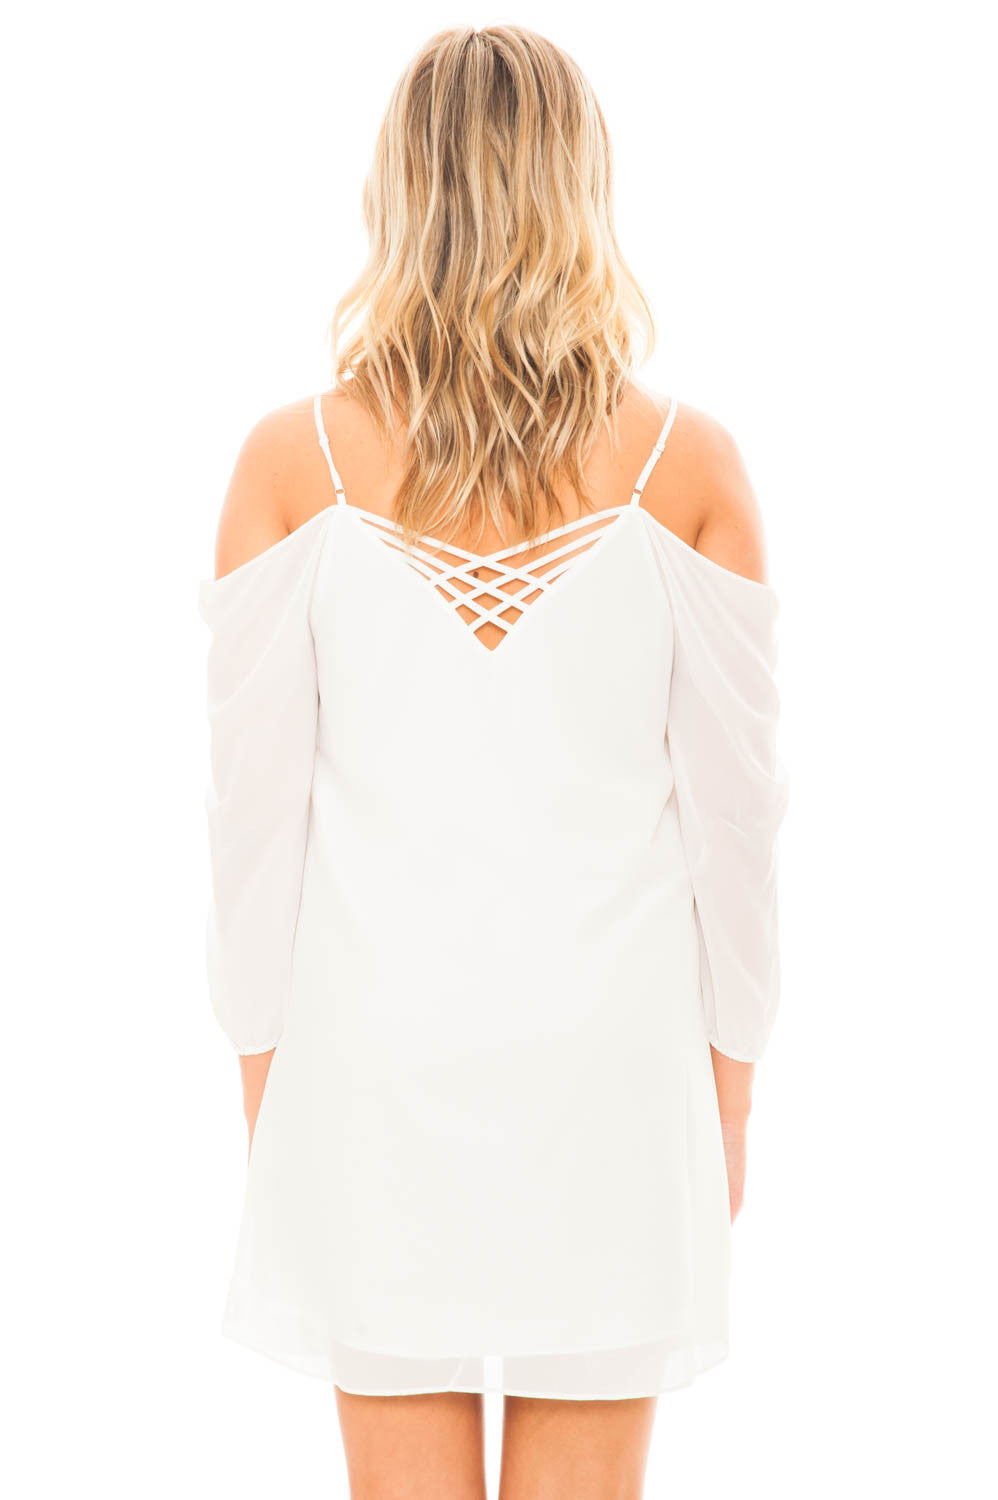 Dress - Criss Cross Back Cold Shoulder dress